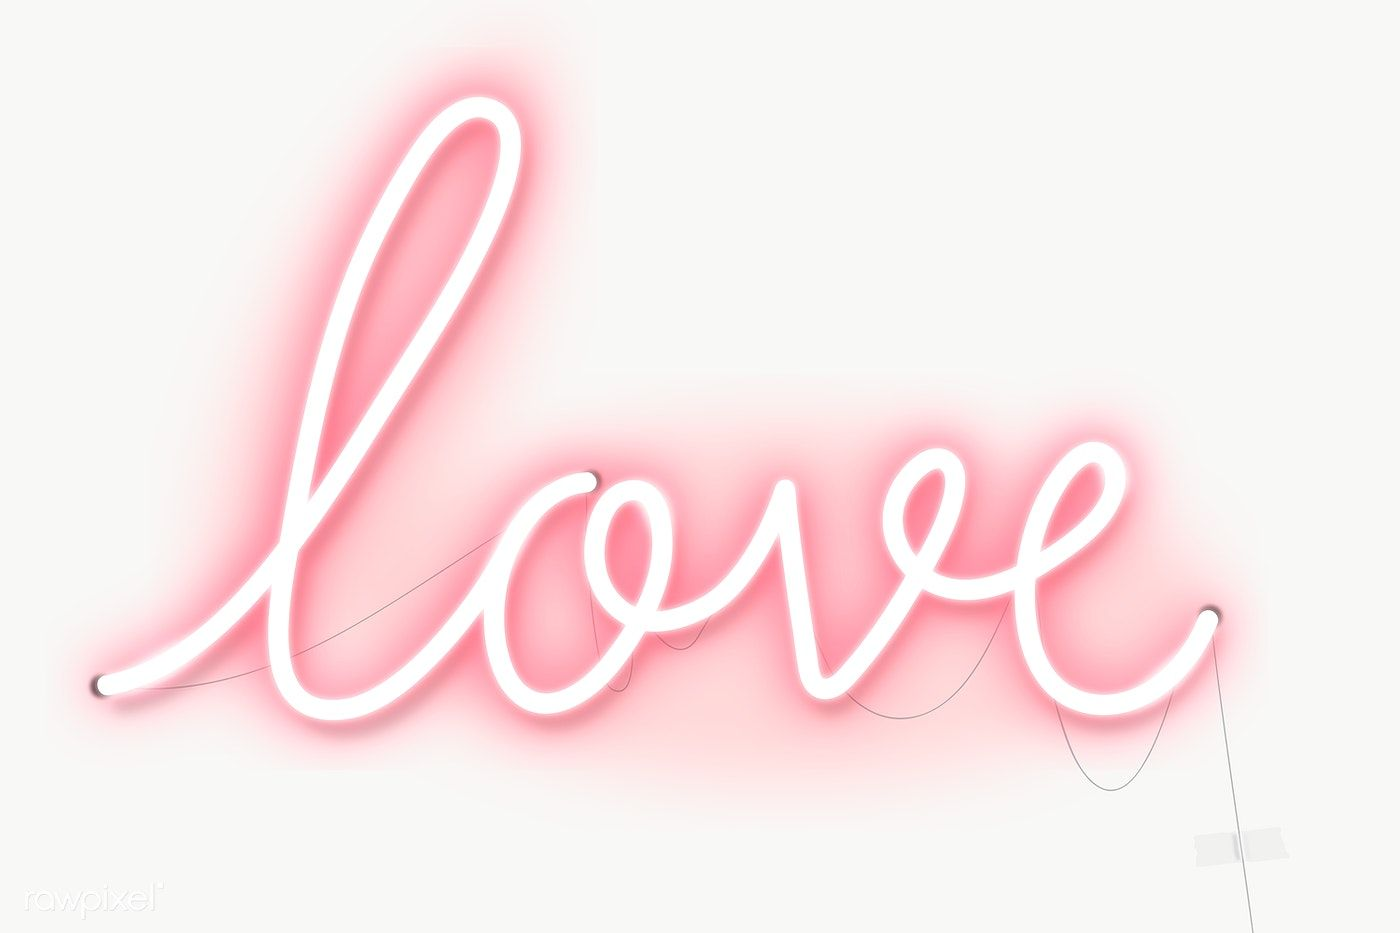 Neon Love Sign Design Resource Transparent Png Free Image By Rawpixel Com Marinemynt Neon Typography Sign Design Love Signs